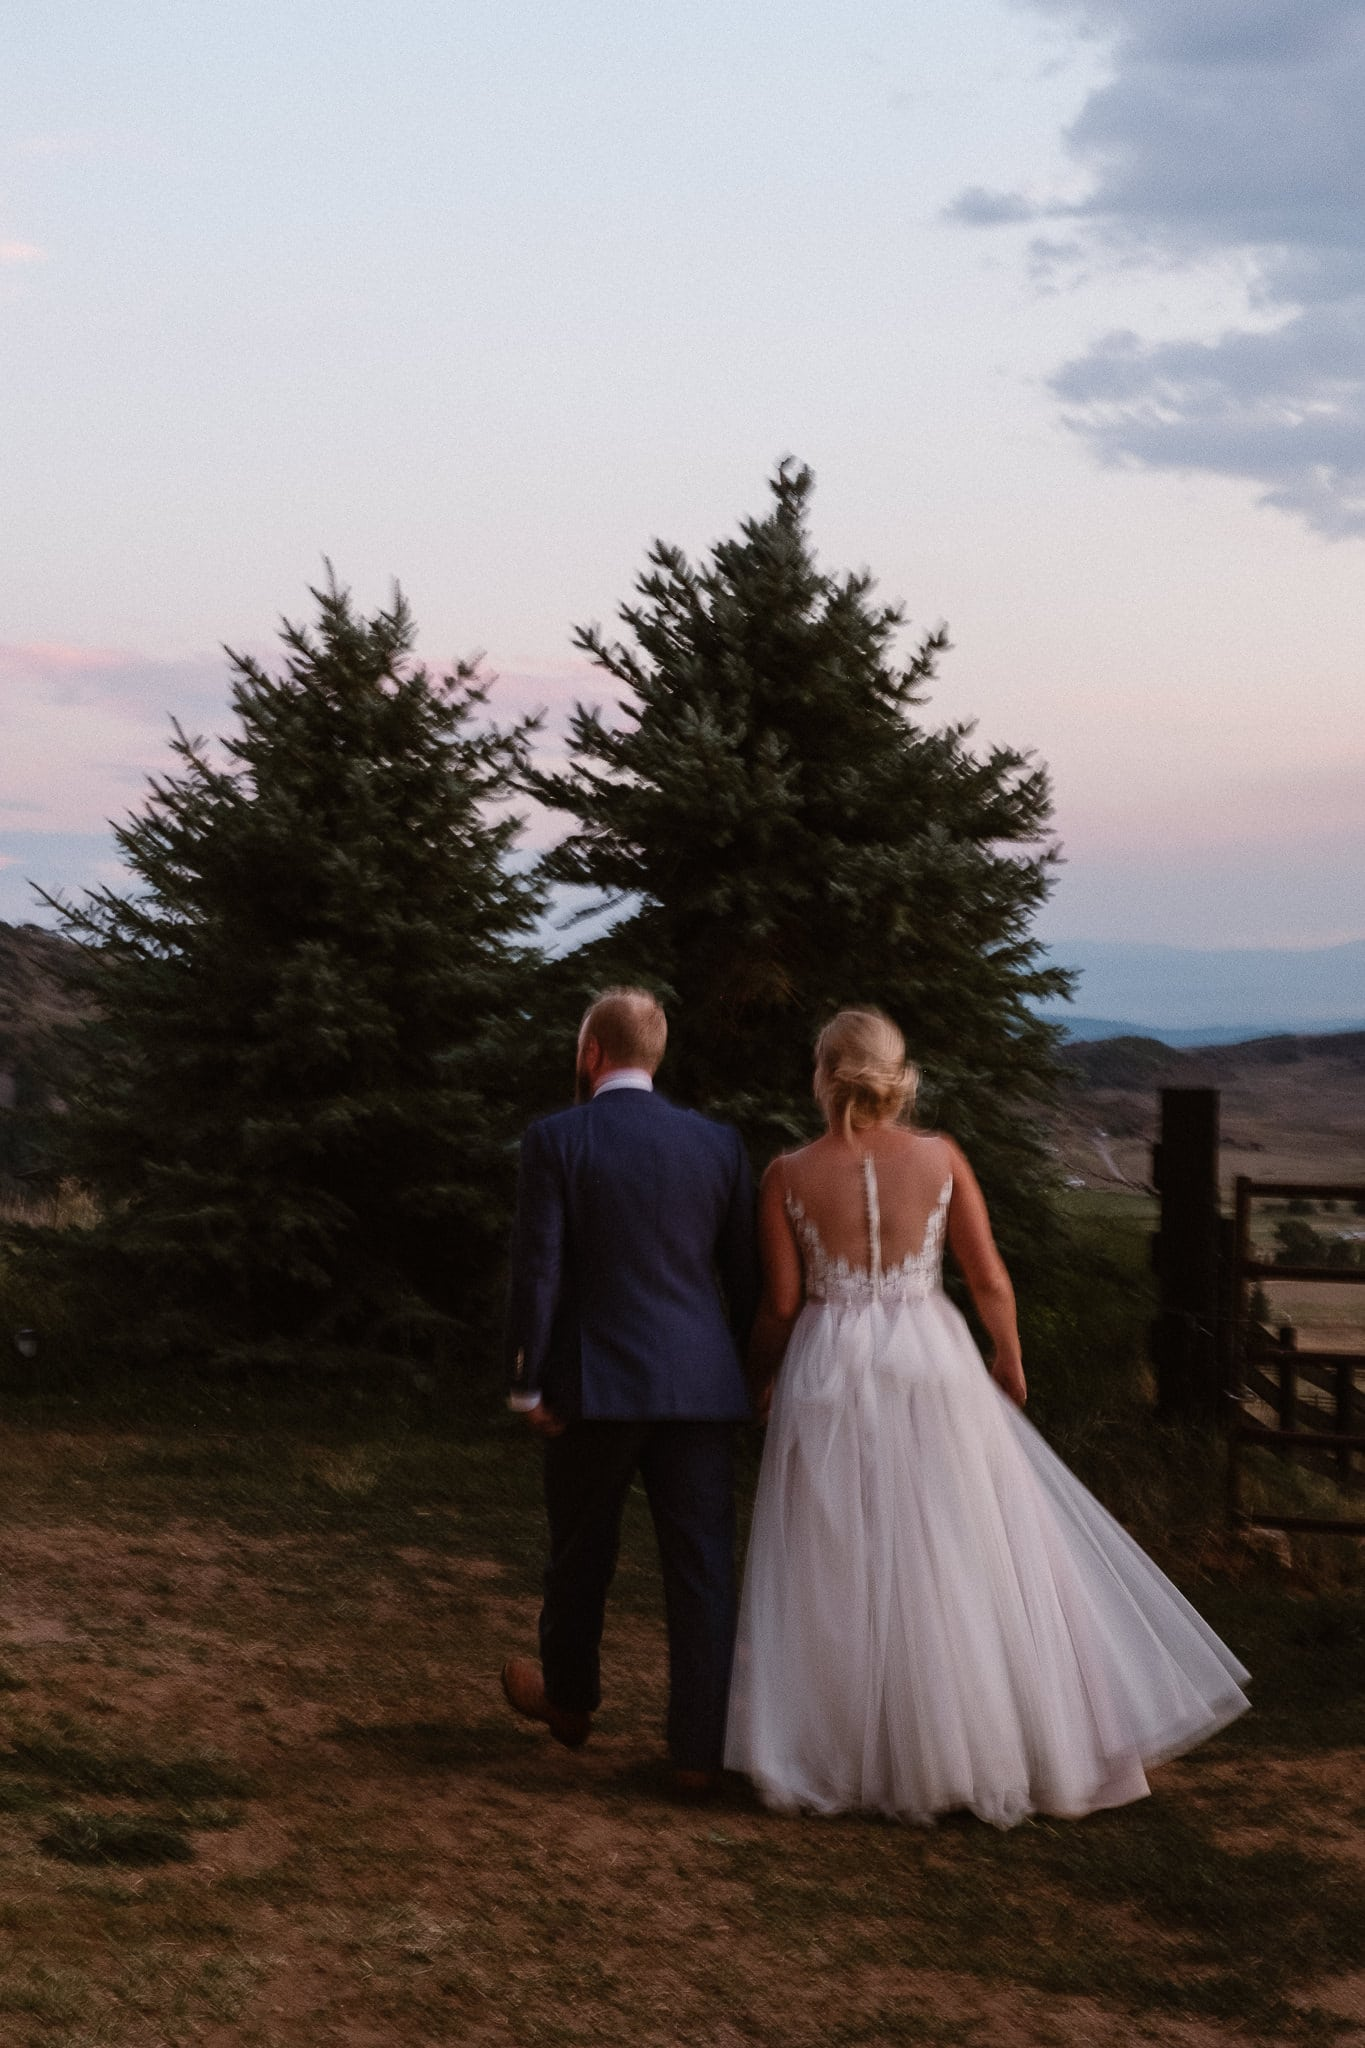 Steamboat Springs wedding photographer, La Joya Dulce wedding, Colorado ranch wedding venues, bride and groom walking at sunset